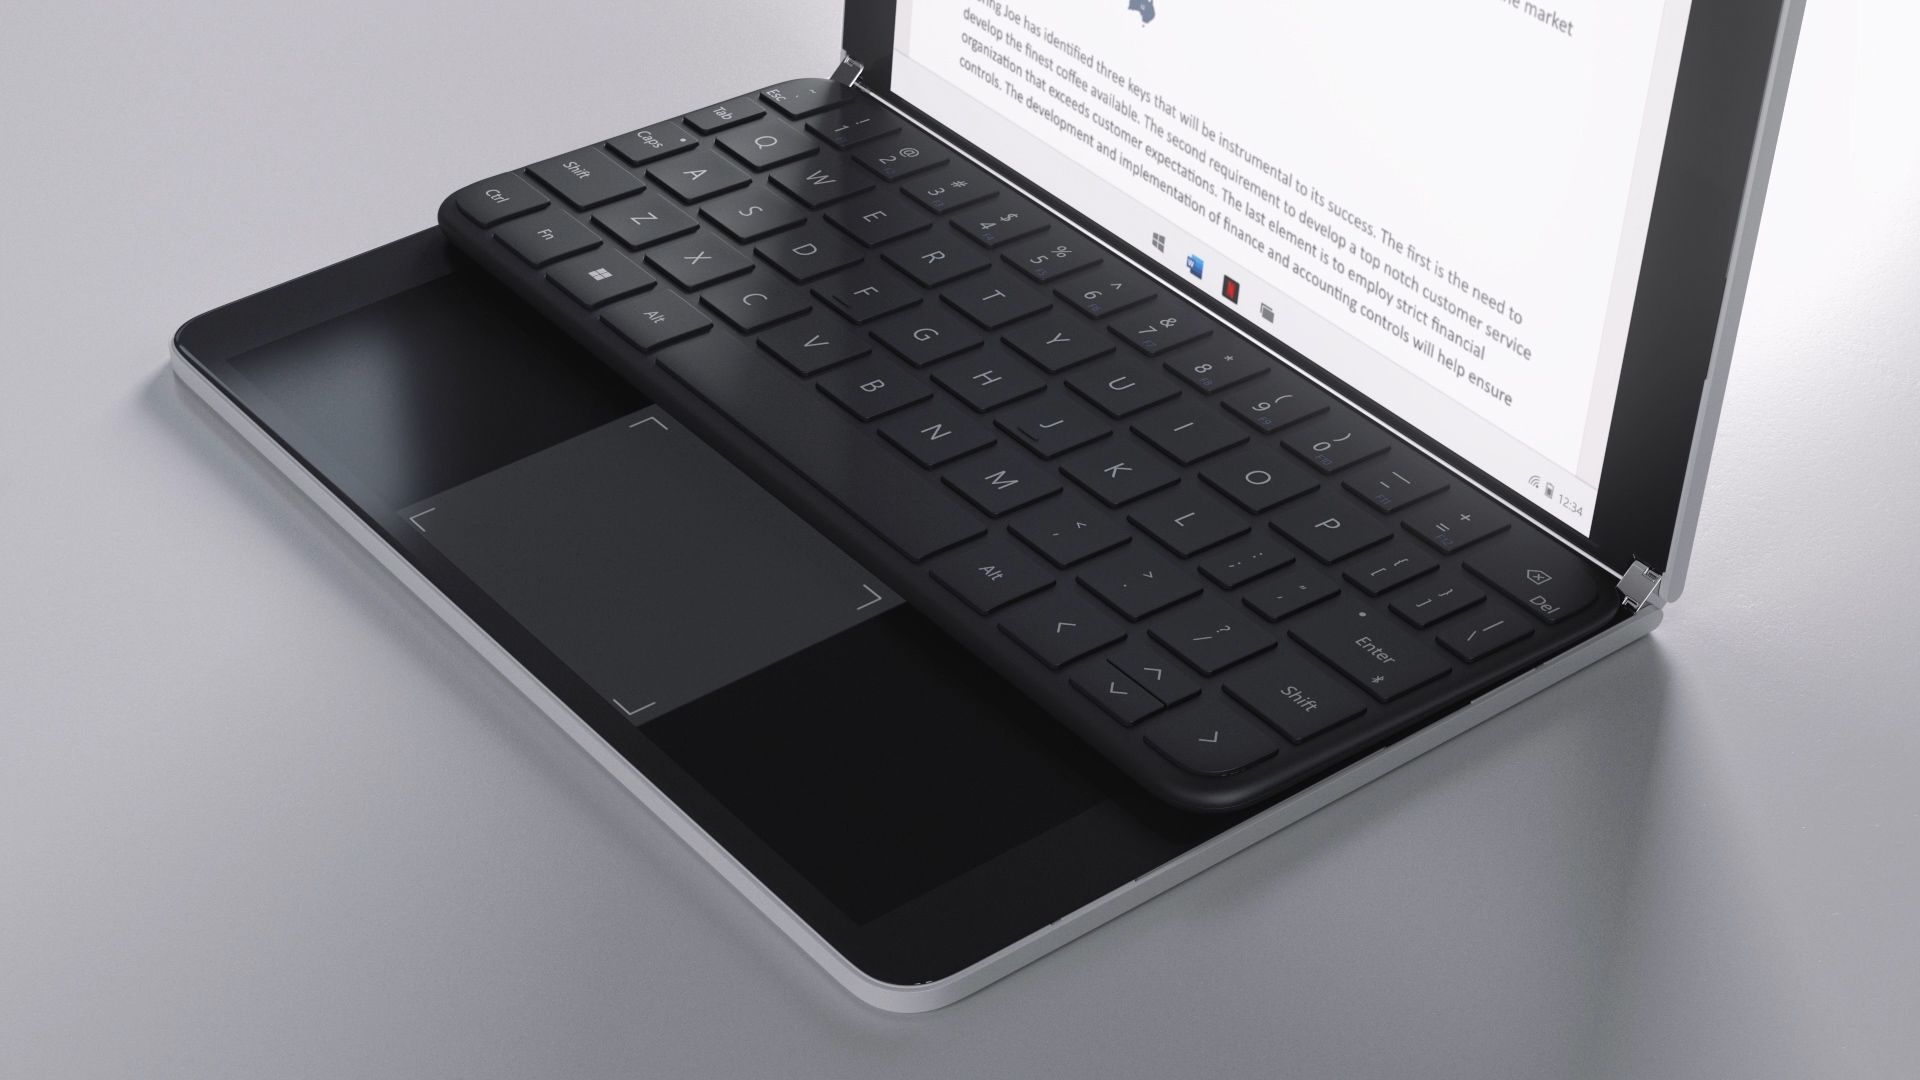 The keyboard and trackpad of the Surface Neo are placed on a screen of the device.